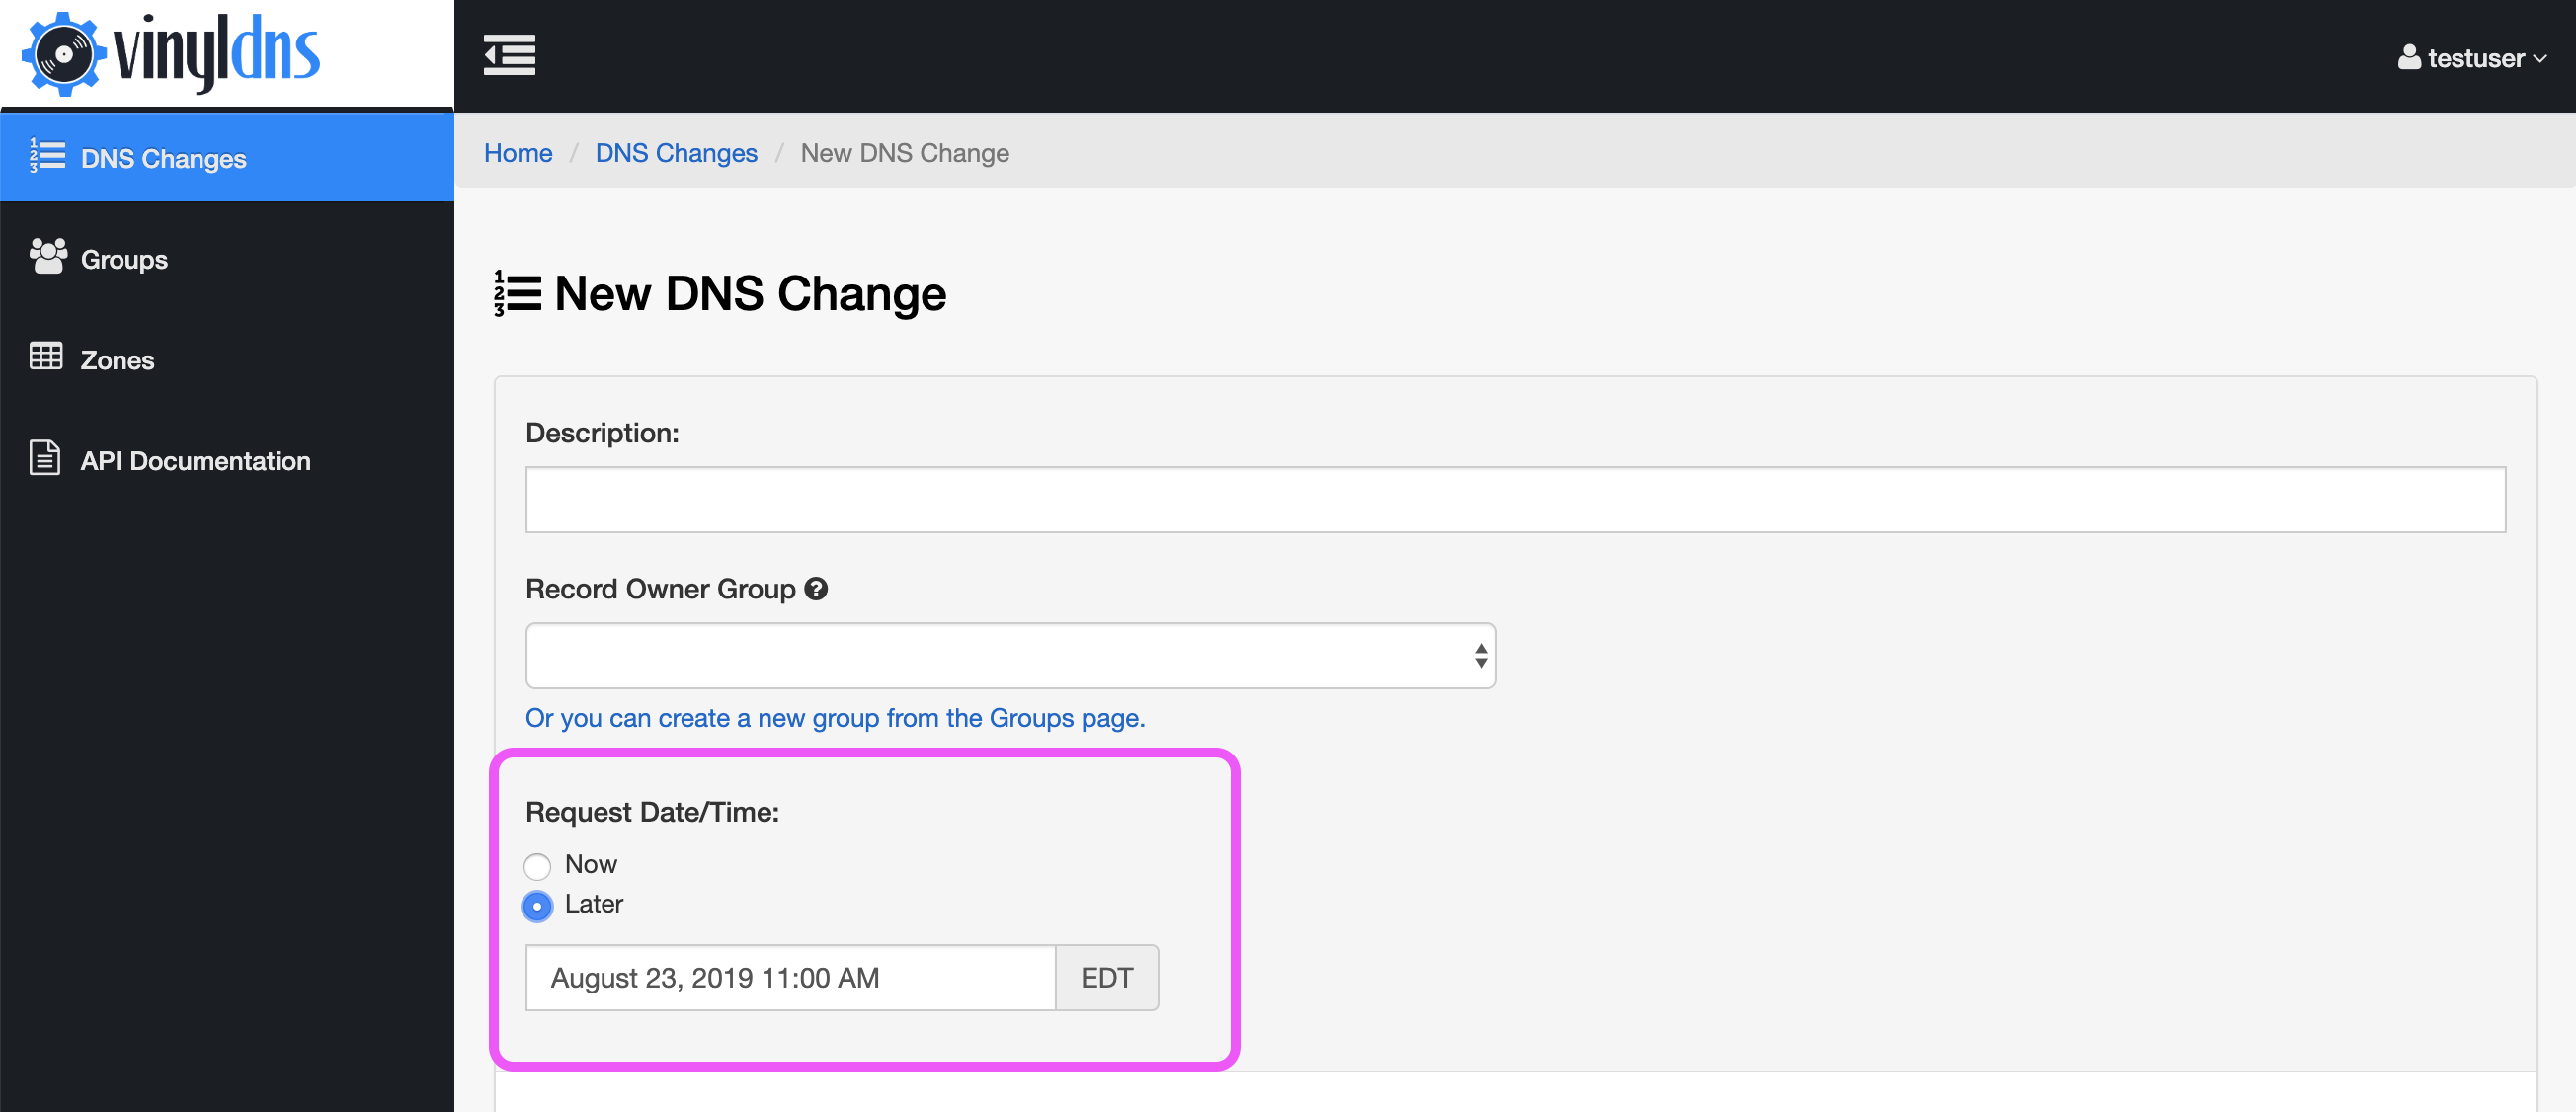 New DNS Change form with scheduling field